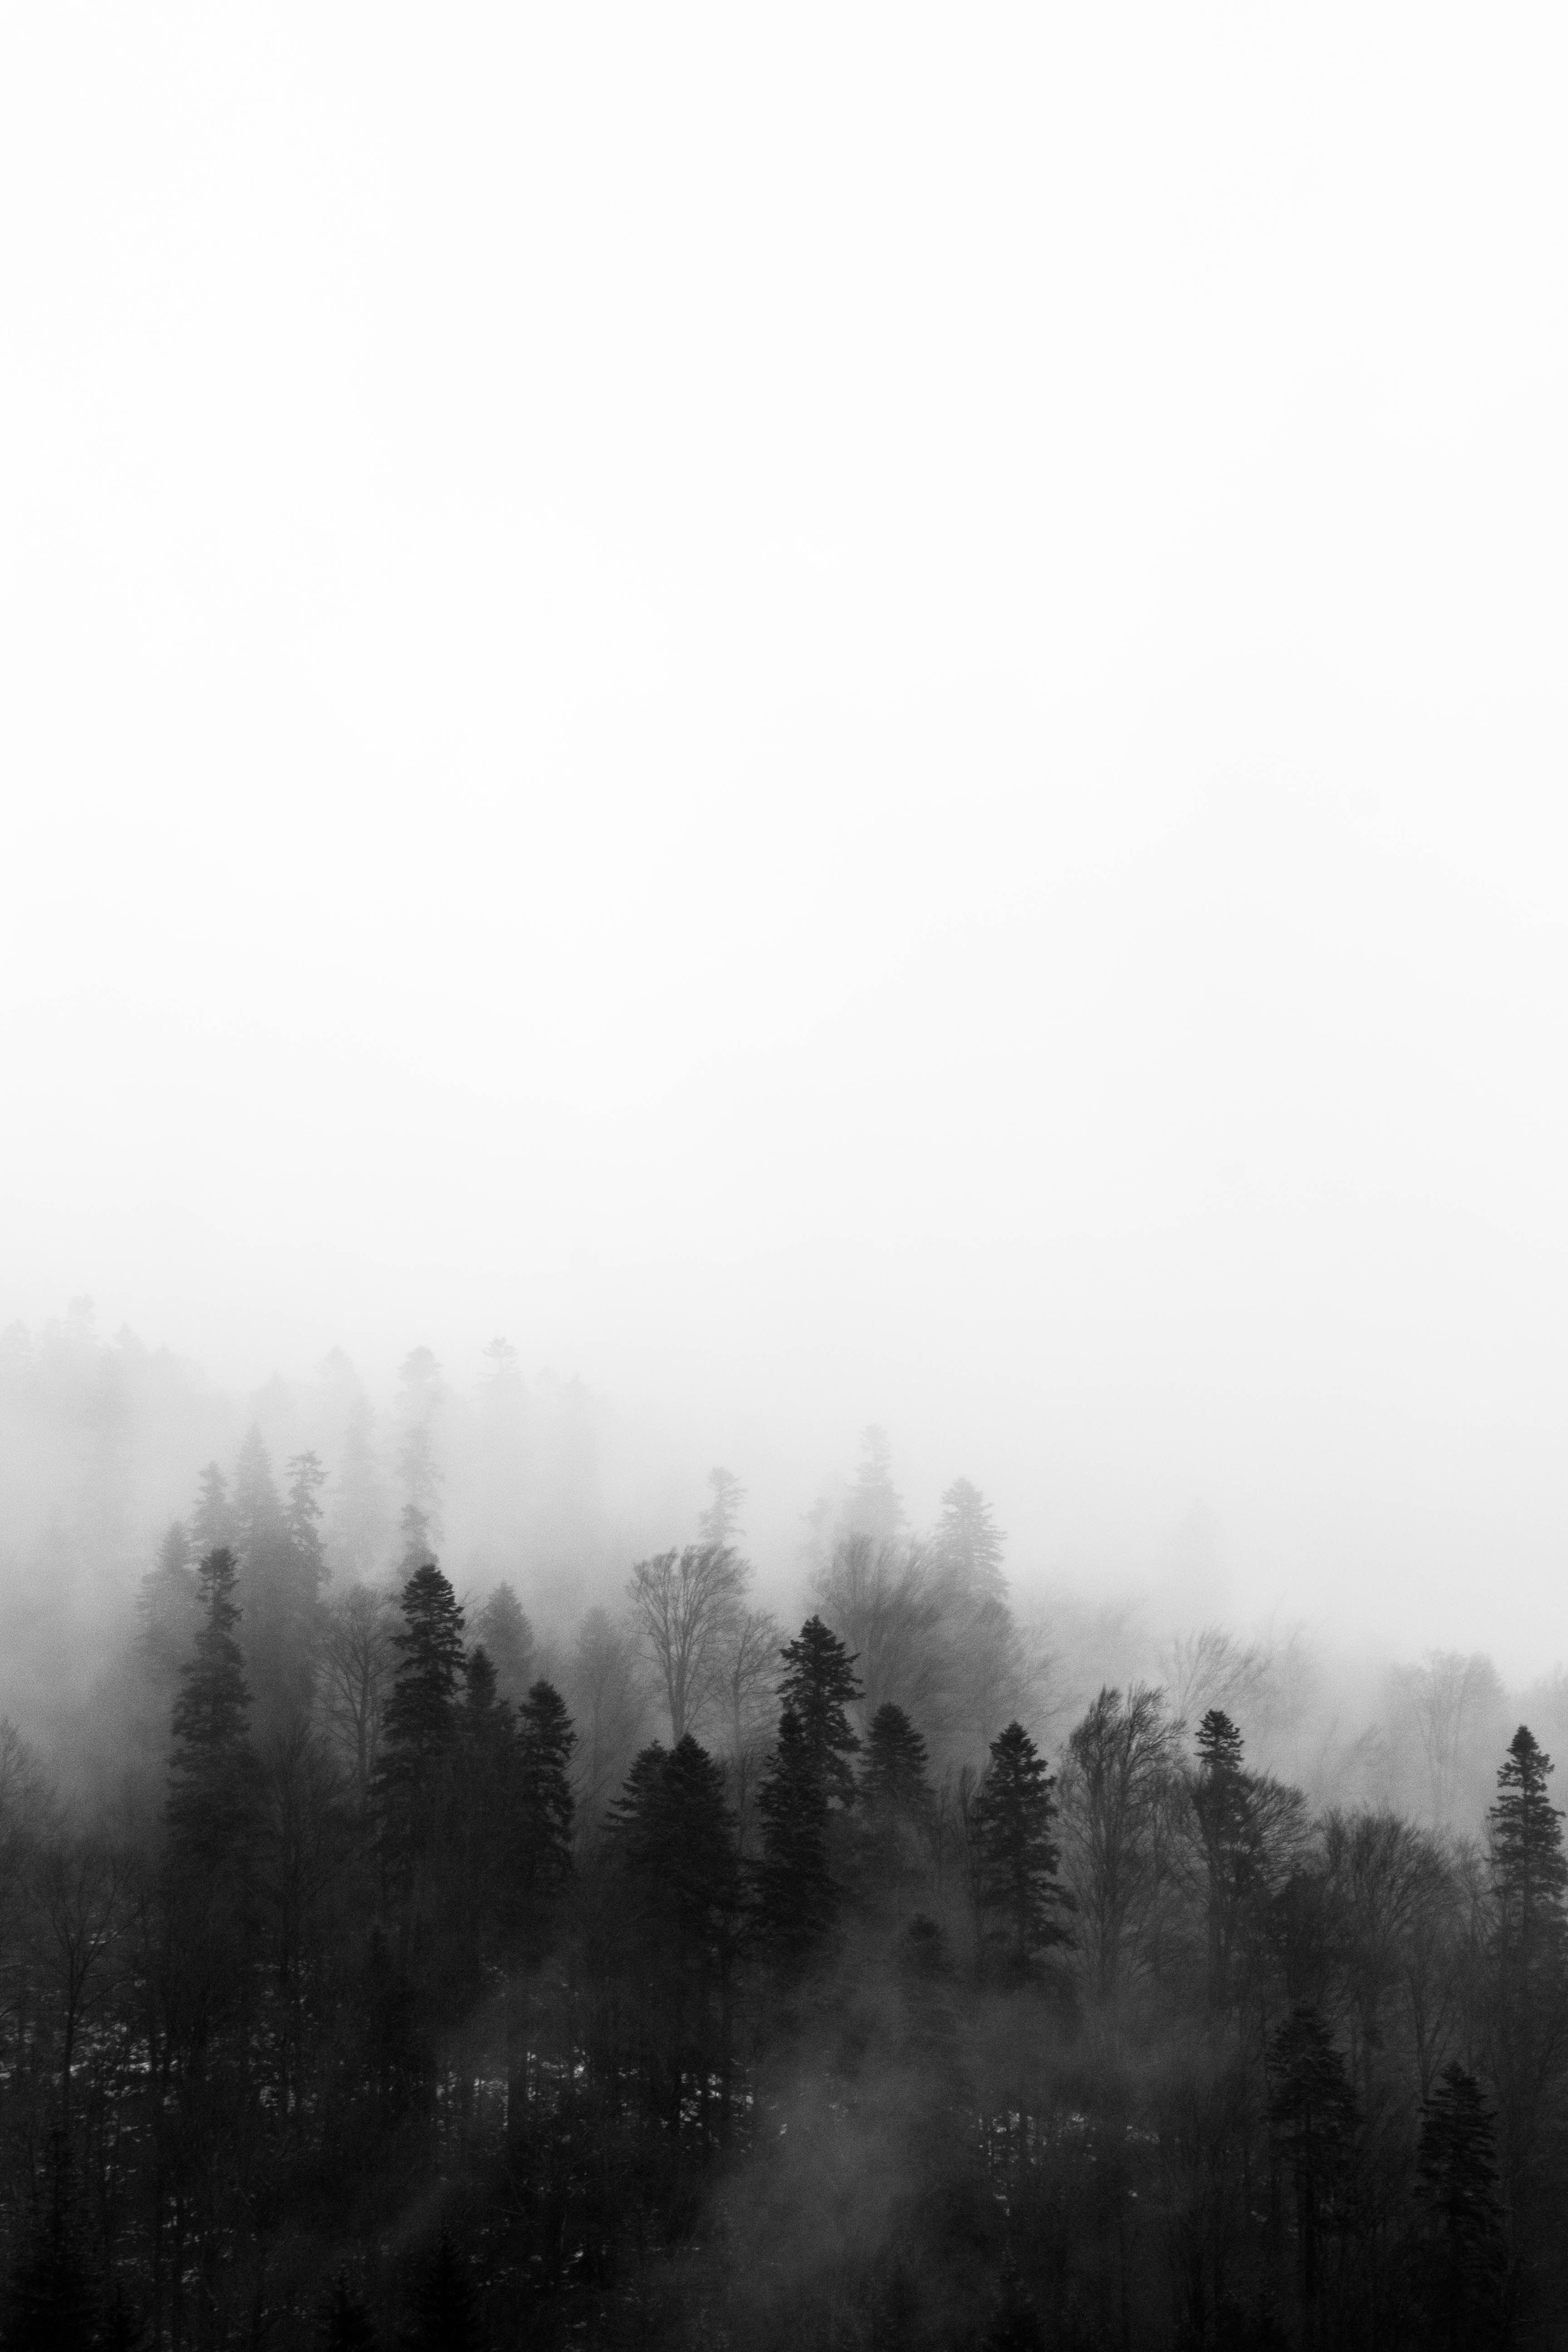 New Android Landscape Wallpapers Black And White Tree Black And White Wallpaper Black And White Background